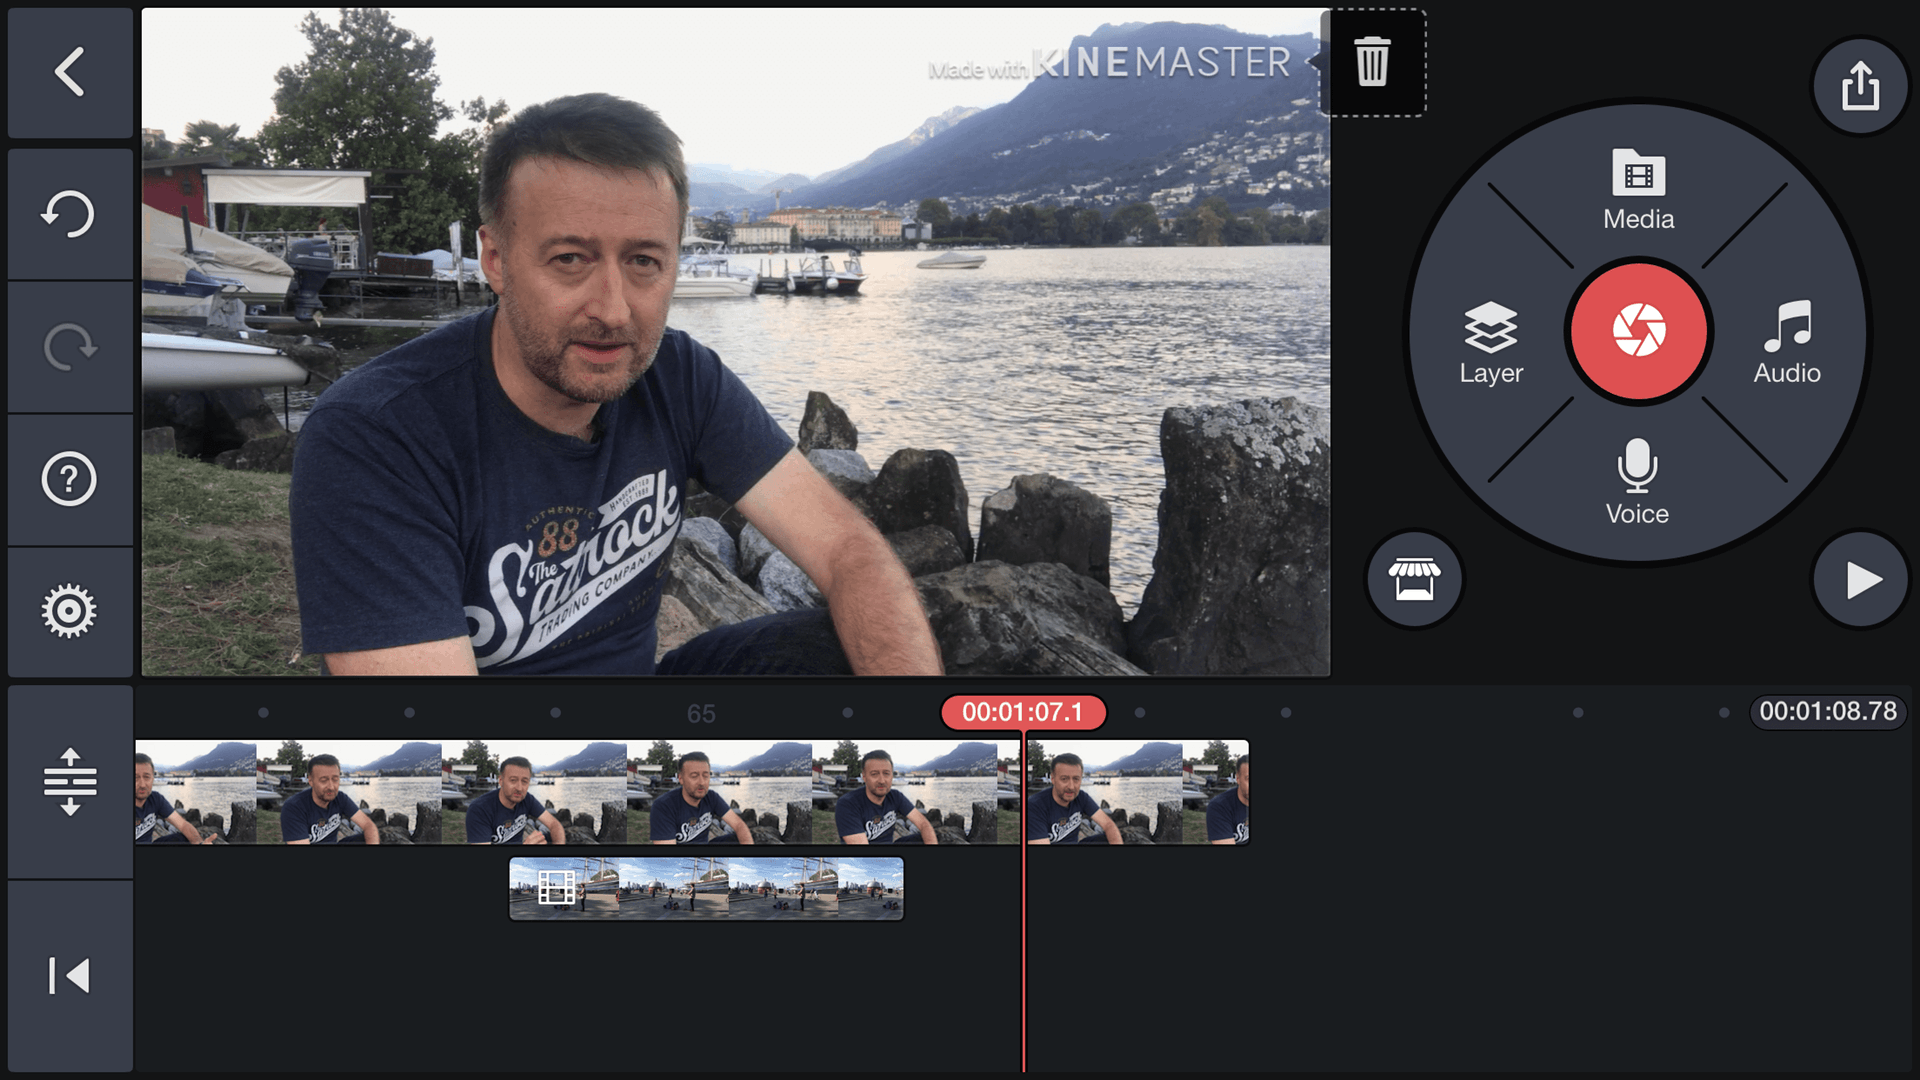 What is the Best Mobile App for Video Editing?